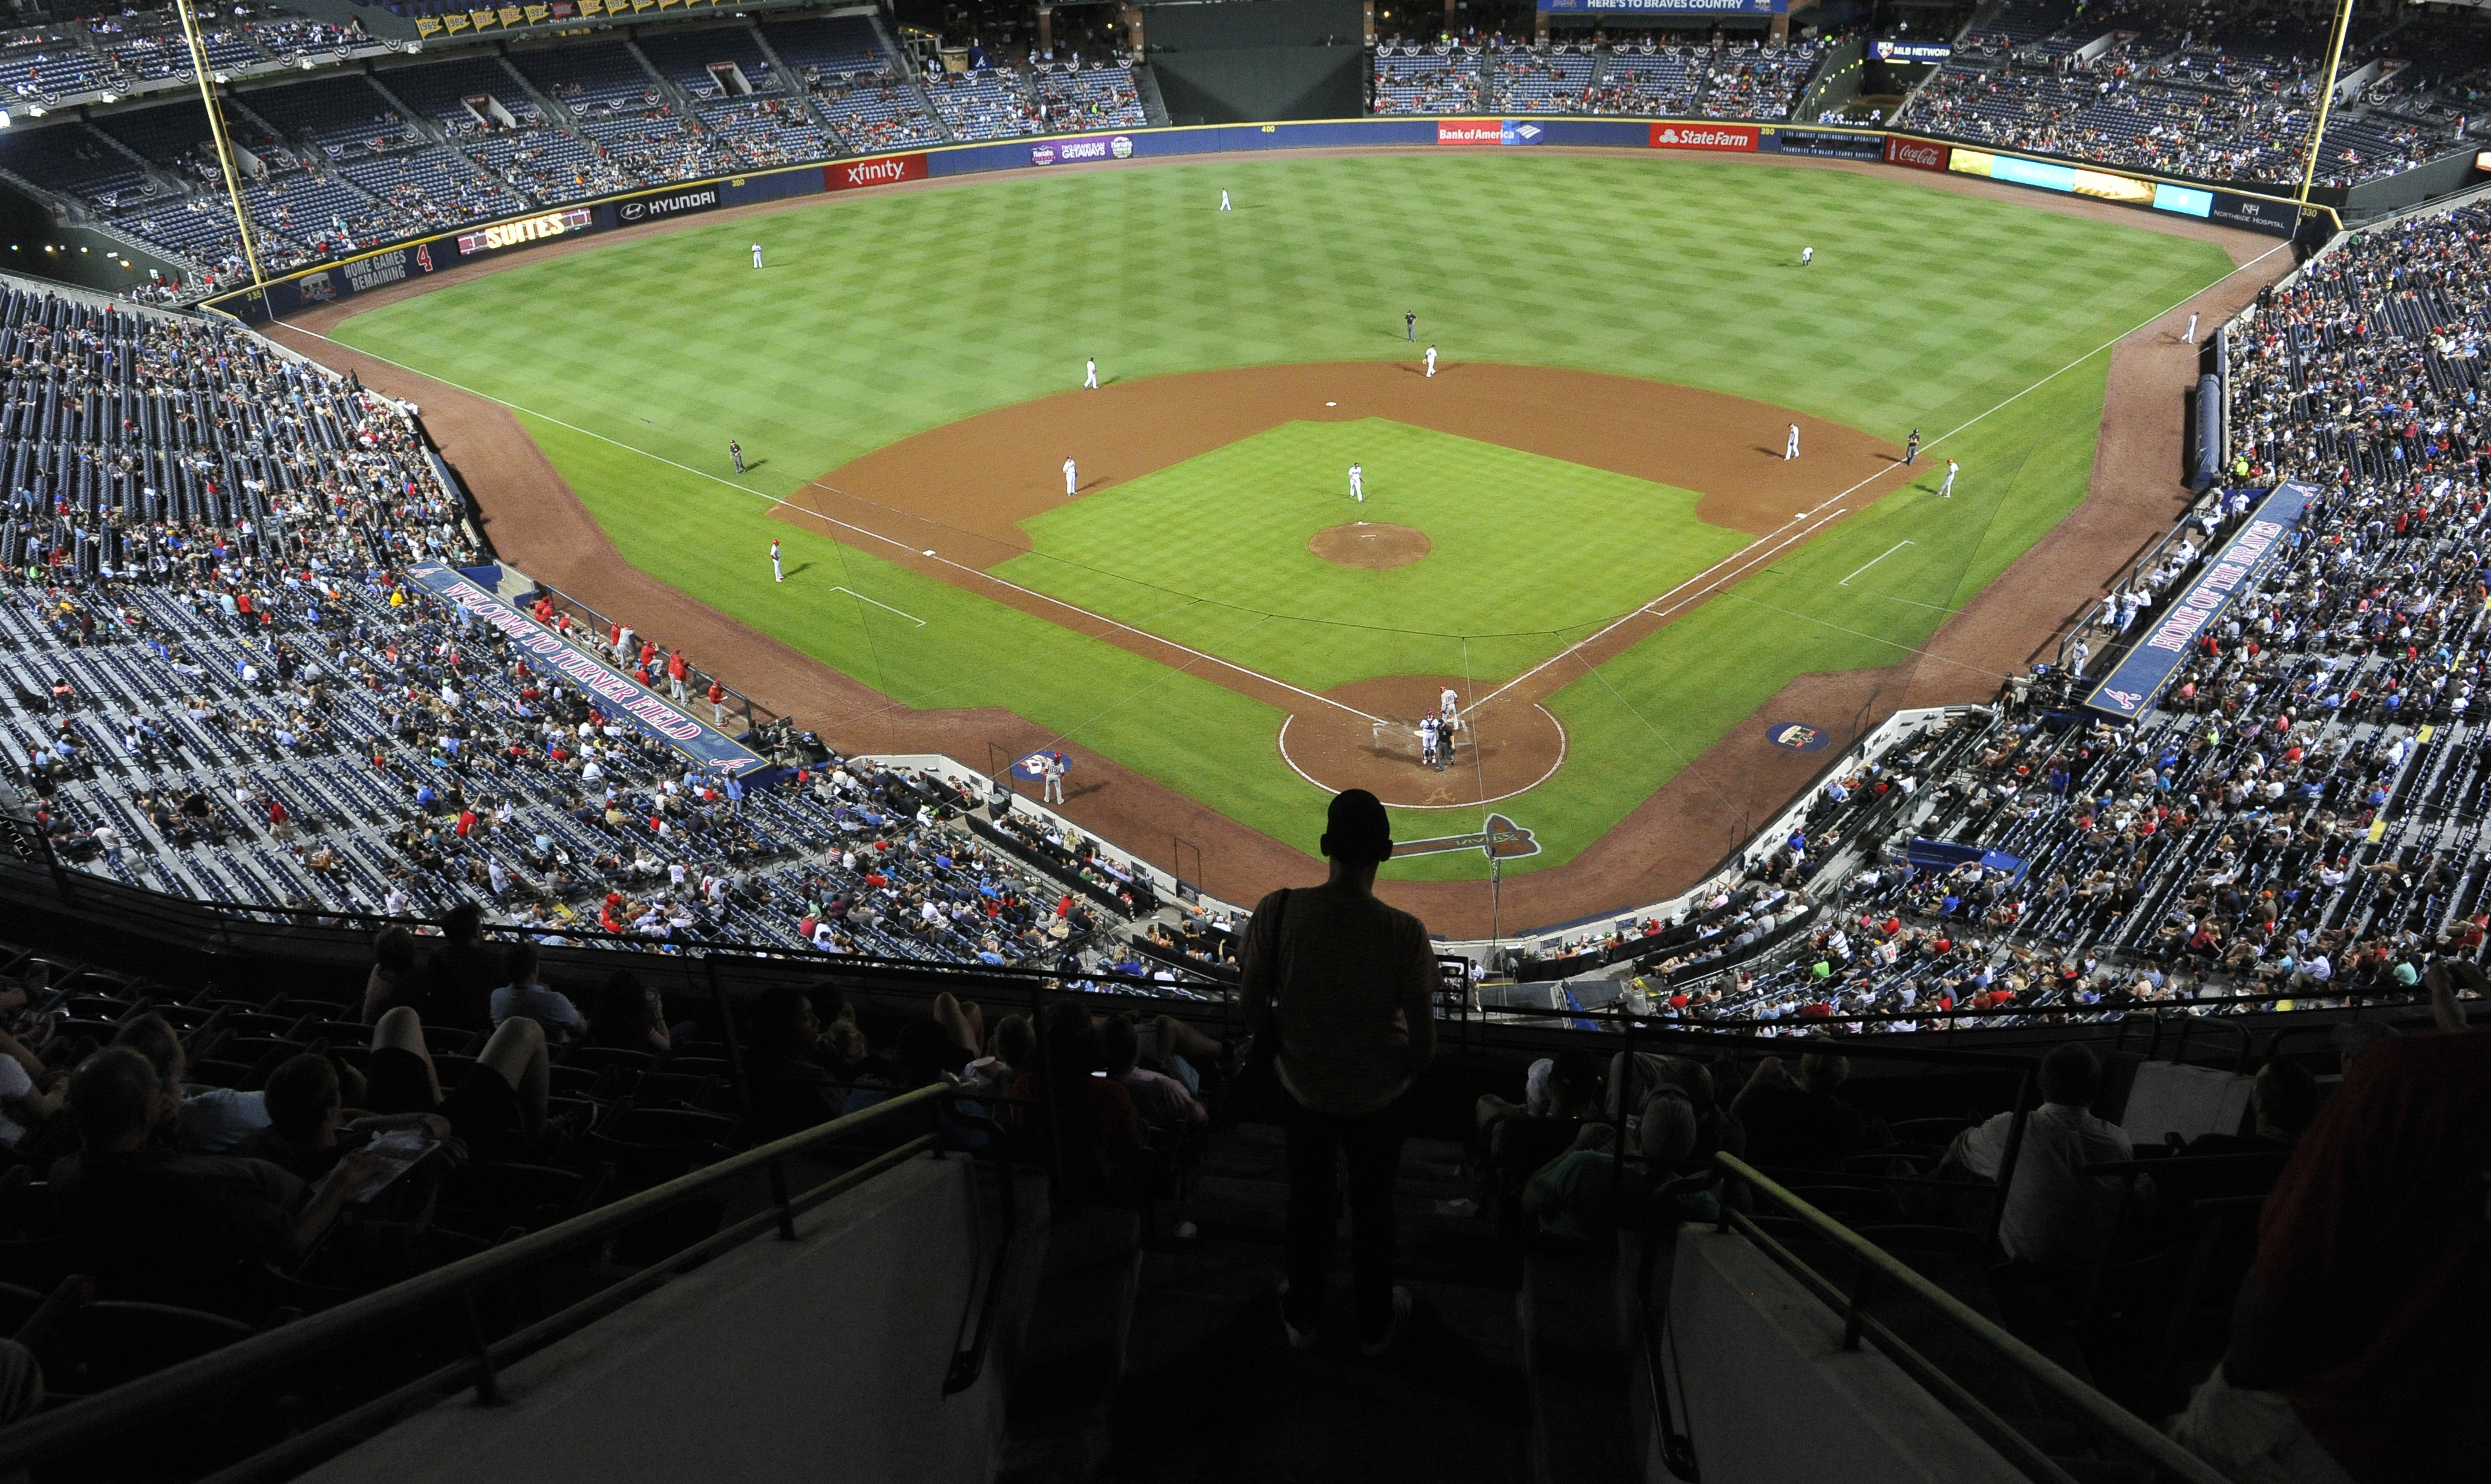 A fan watches the ninth inning of the Atlanta Braves' baseball game against the Philadelphia Phillies at Turner Field, Wednesday, Sept. 28, 2016, in Atlanta. Atlanta won 12-2. The Braves are scheduled to move to a new stadium next season.  (AP Photo/John